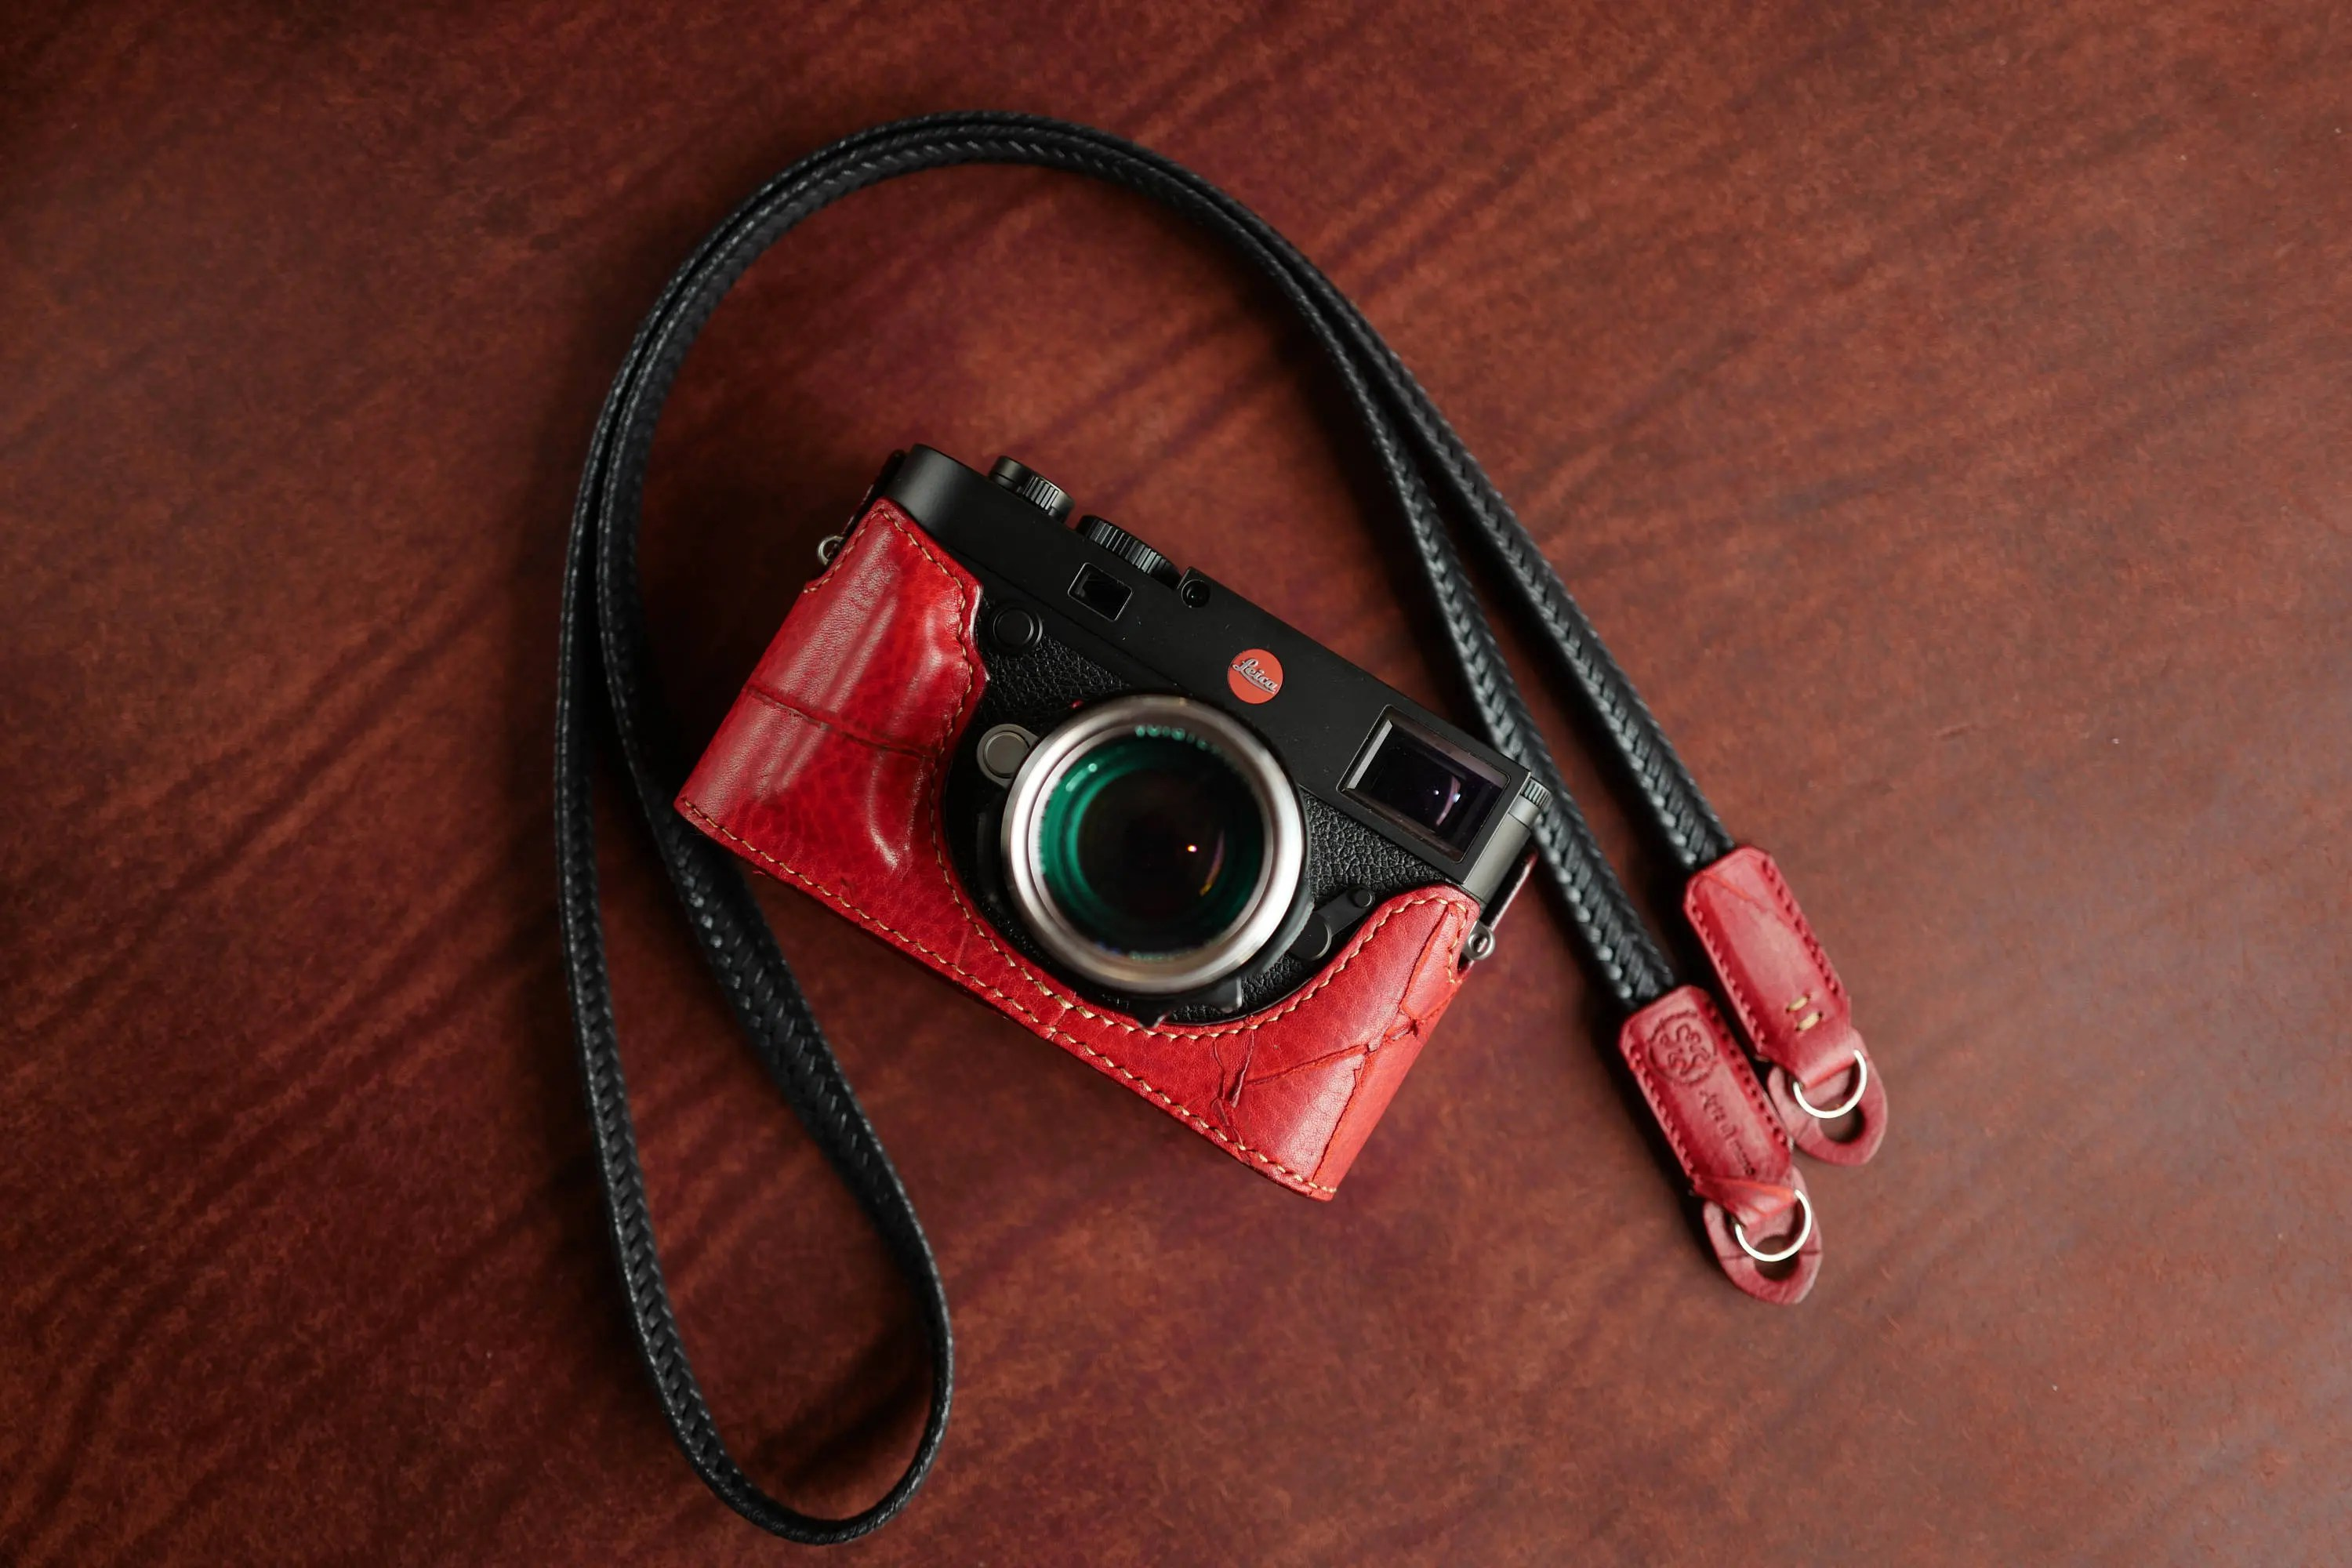 Arte Di Mano Half Case Arte Di Mano Half Case For Leica M10 Battery Door Type